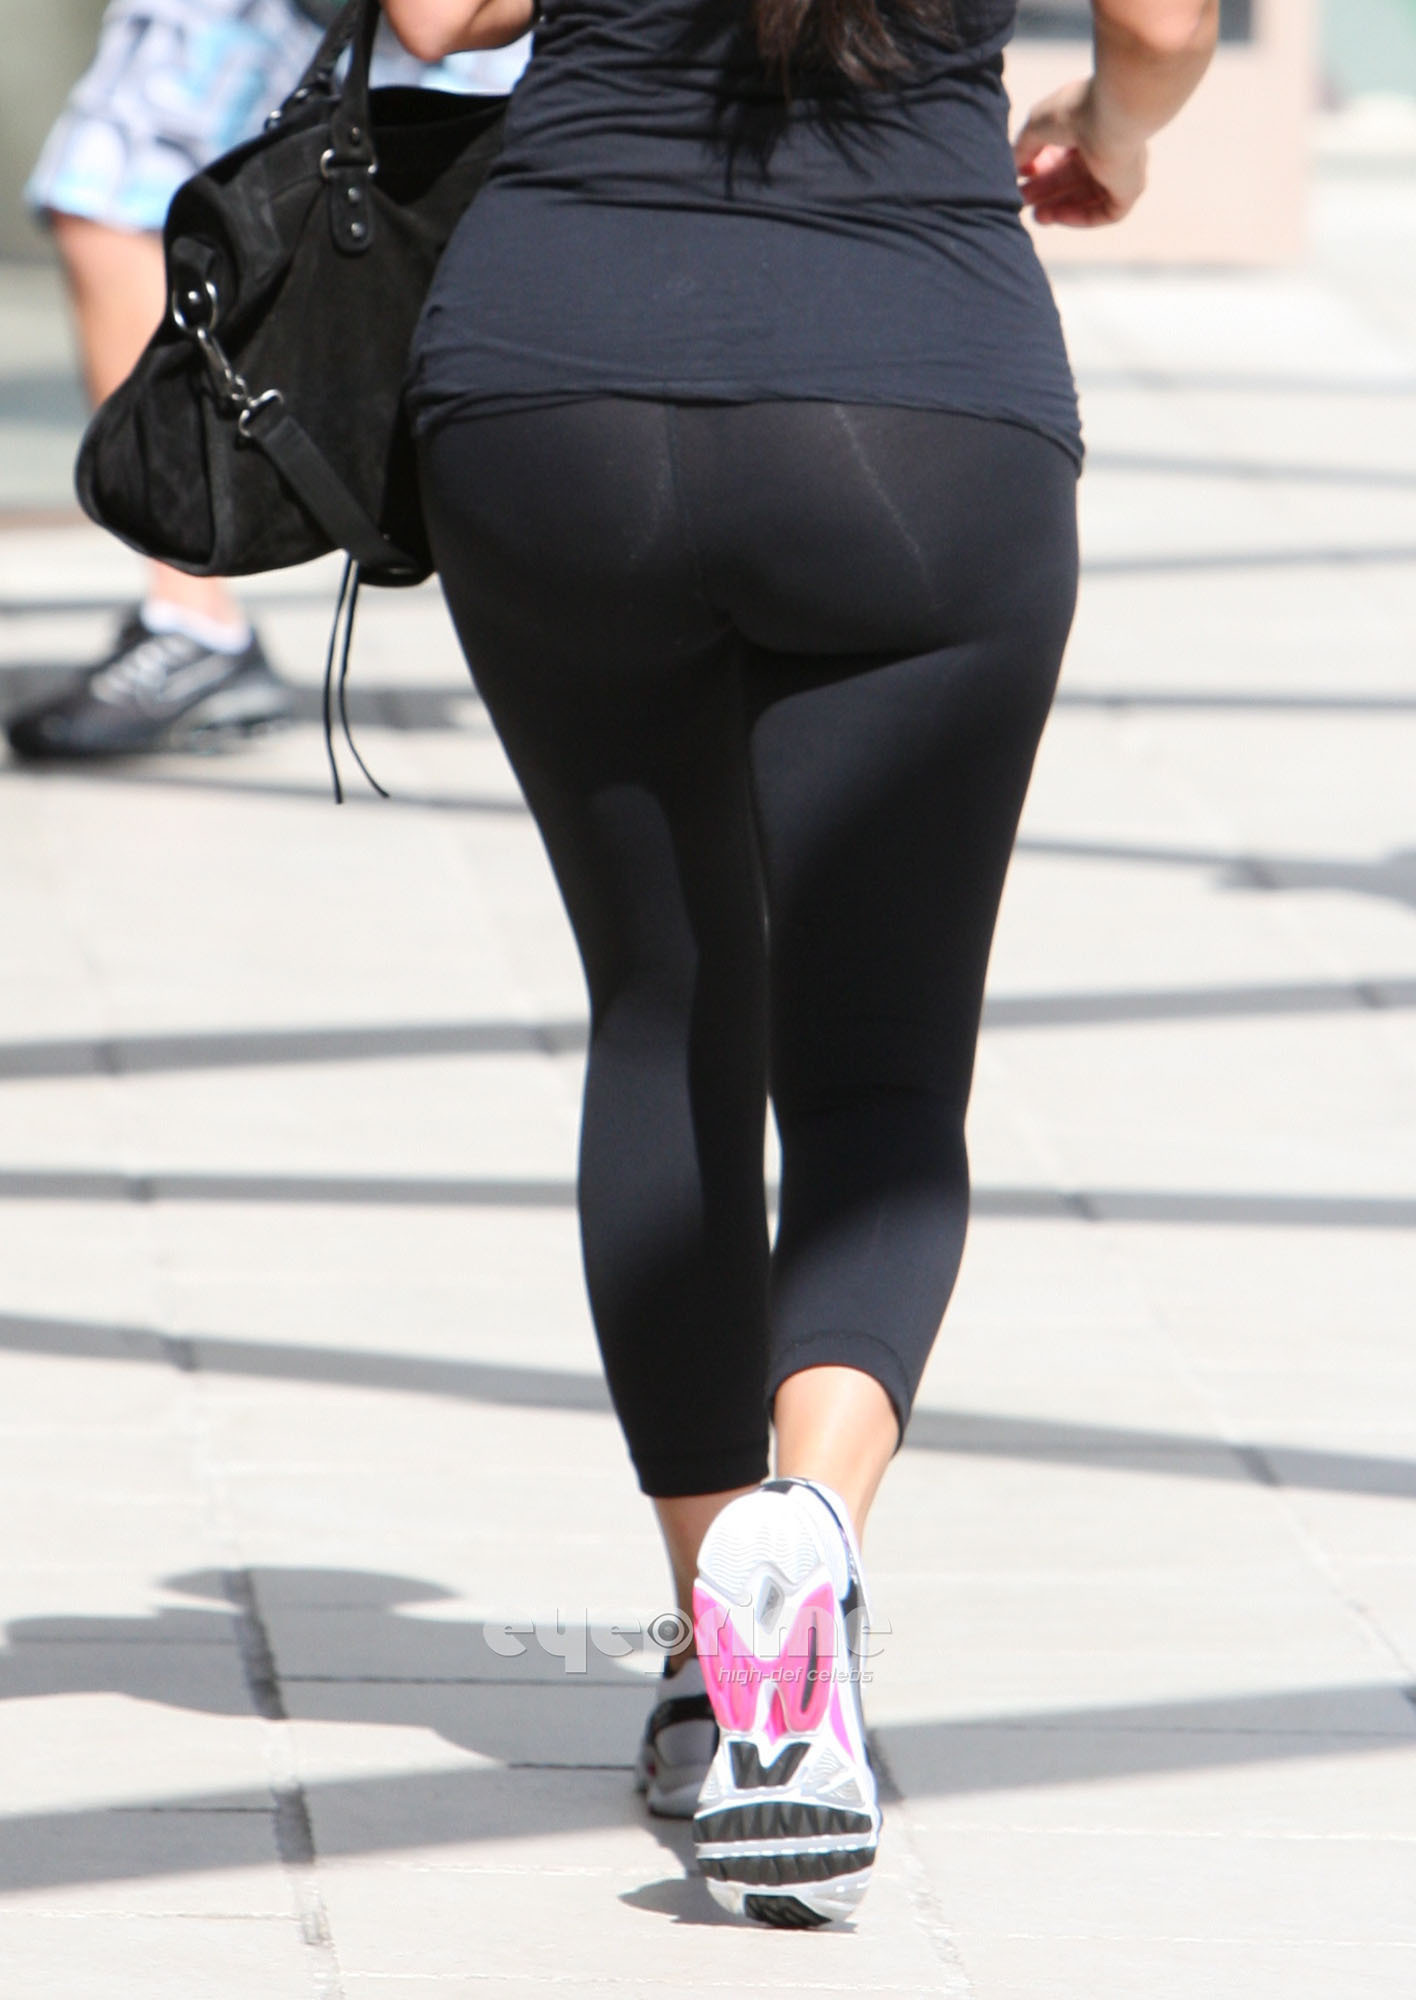 Kim Kardashian hits the Gym in Hollywood, June 2nd